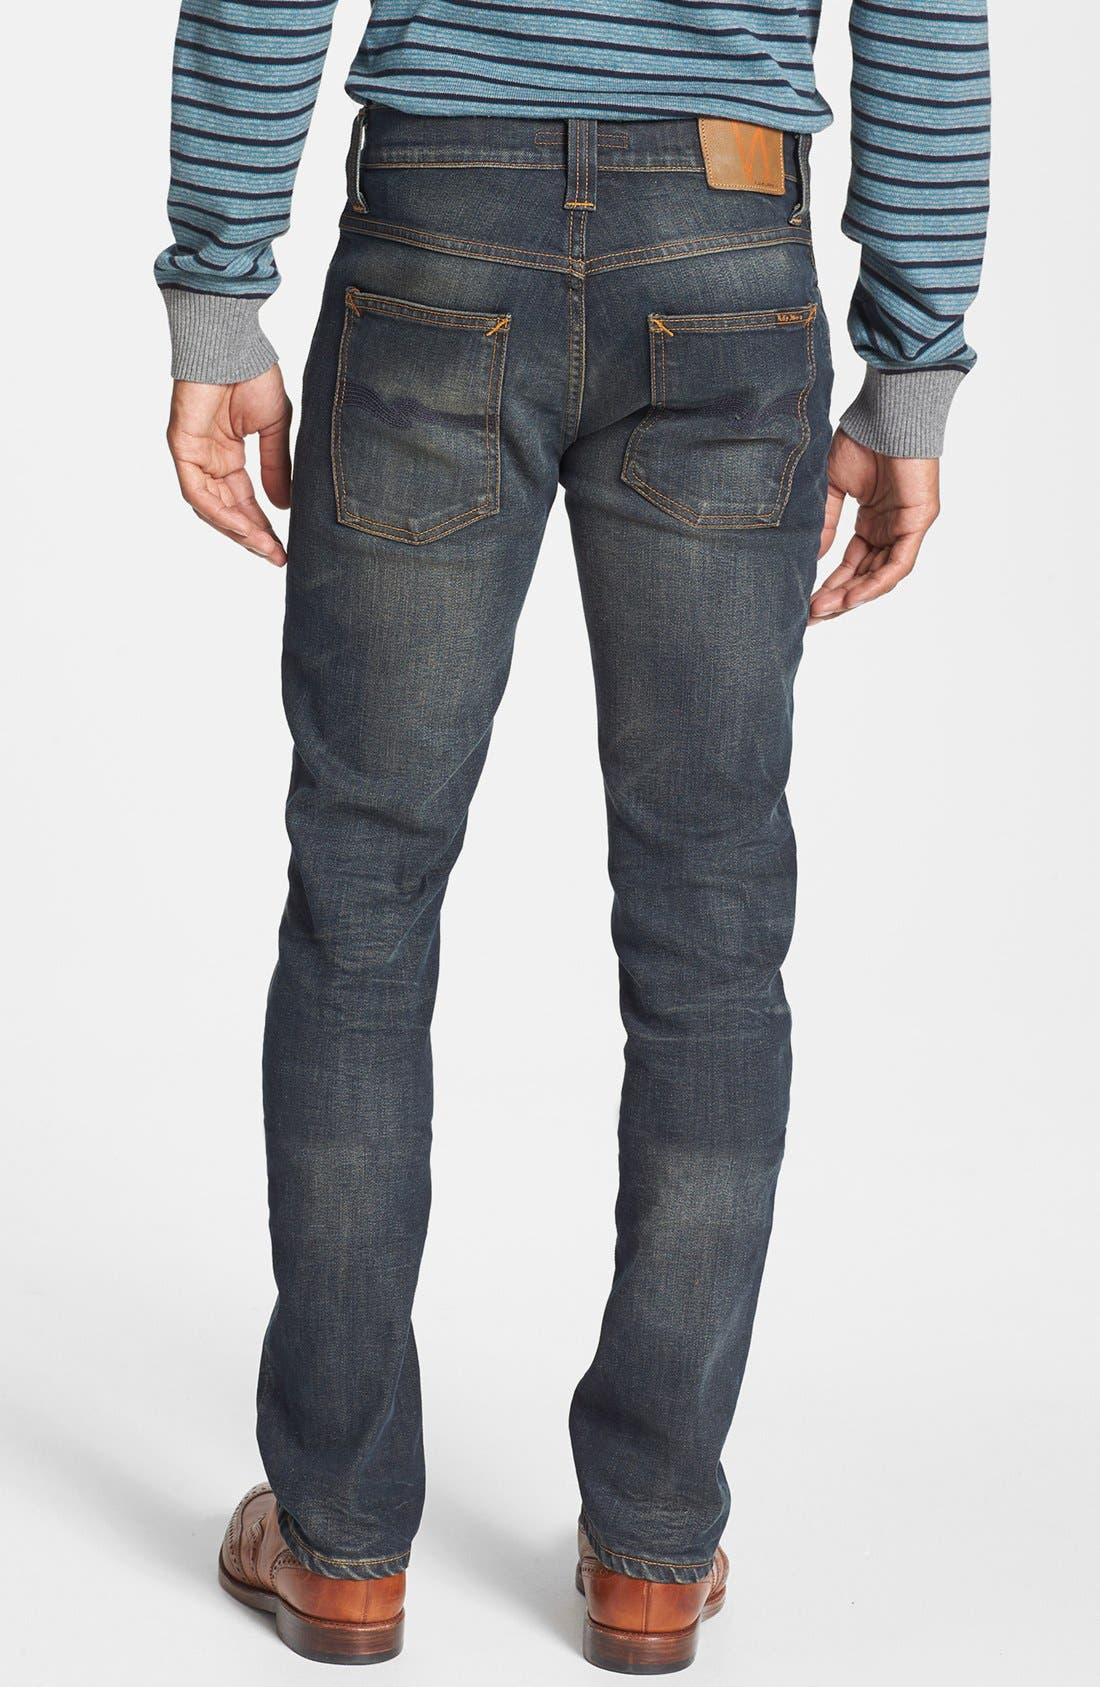 Main Image - Nudie Jeans 'Thin Finn' Skinny Fit Jeans (Organic Worn In Pepper)